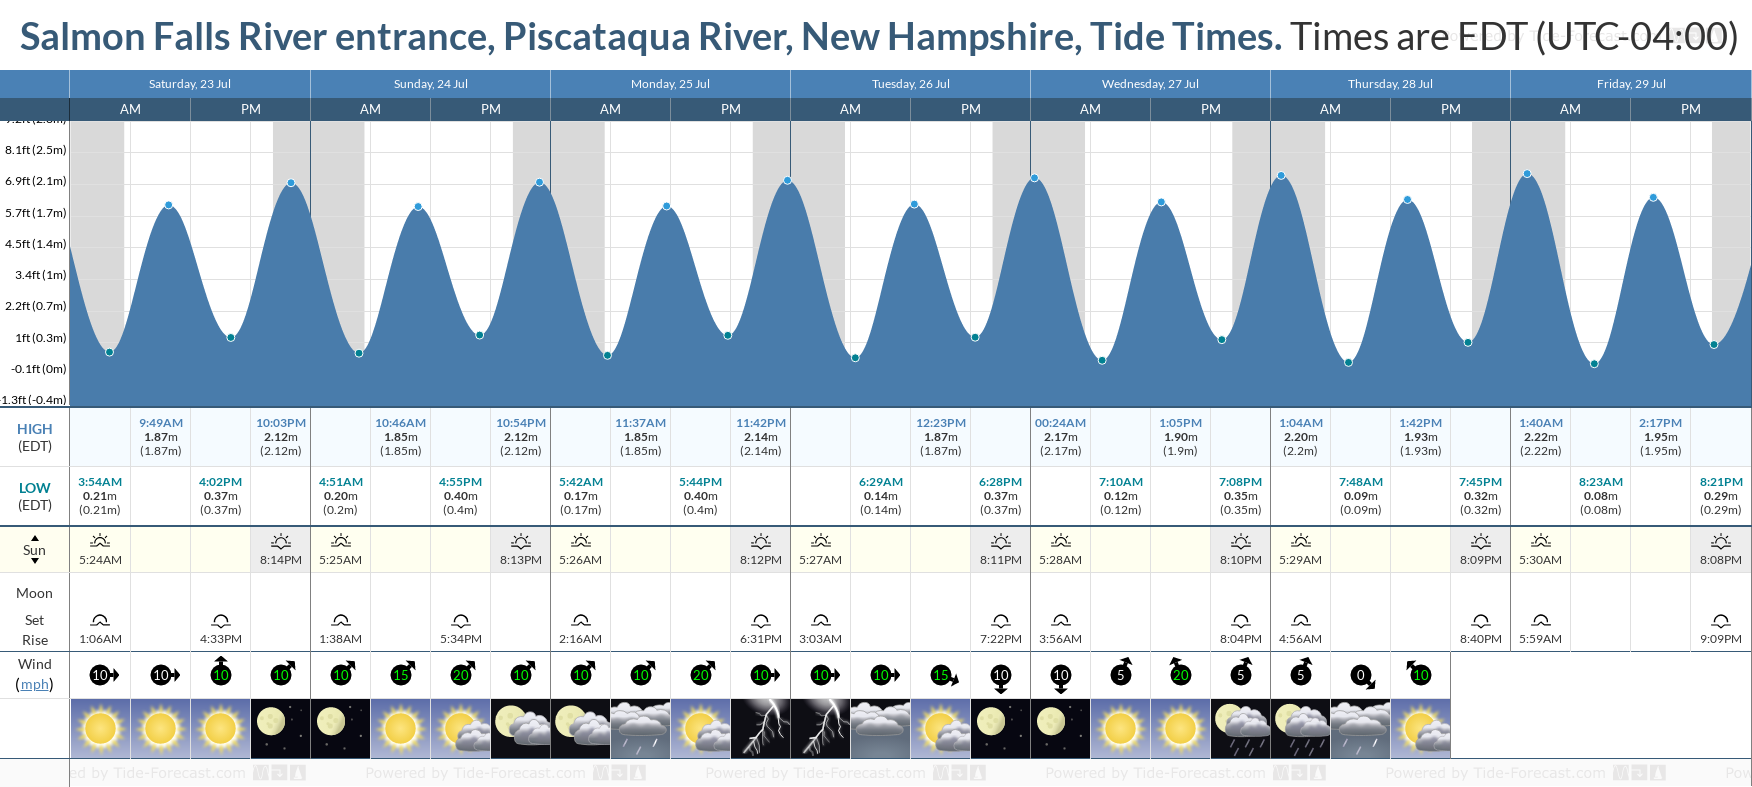 Salmon Falls River entrance, Piscataqua River, New Hampshire Tide Chart including high and low tide tide times for the next 7 days